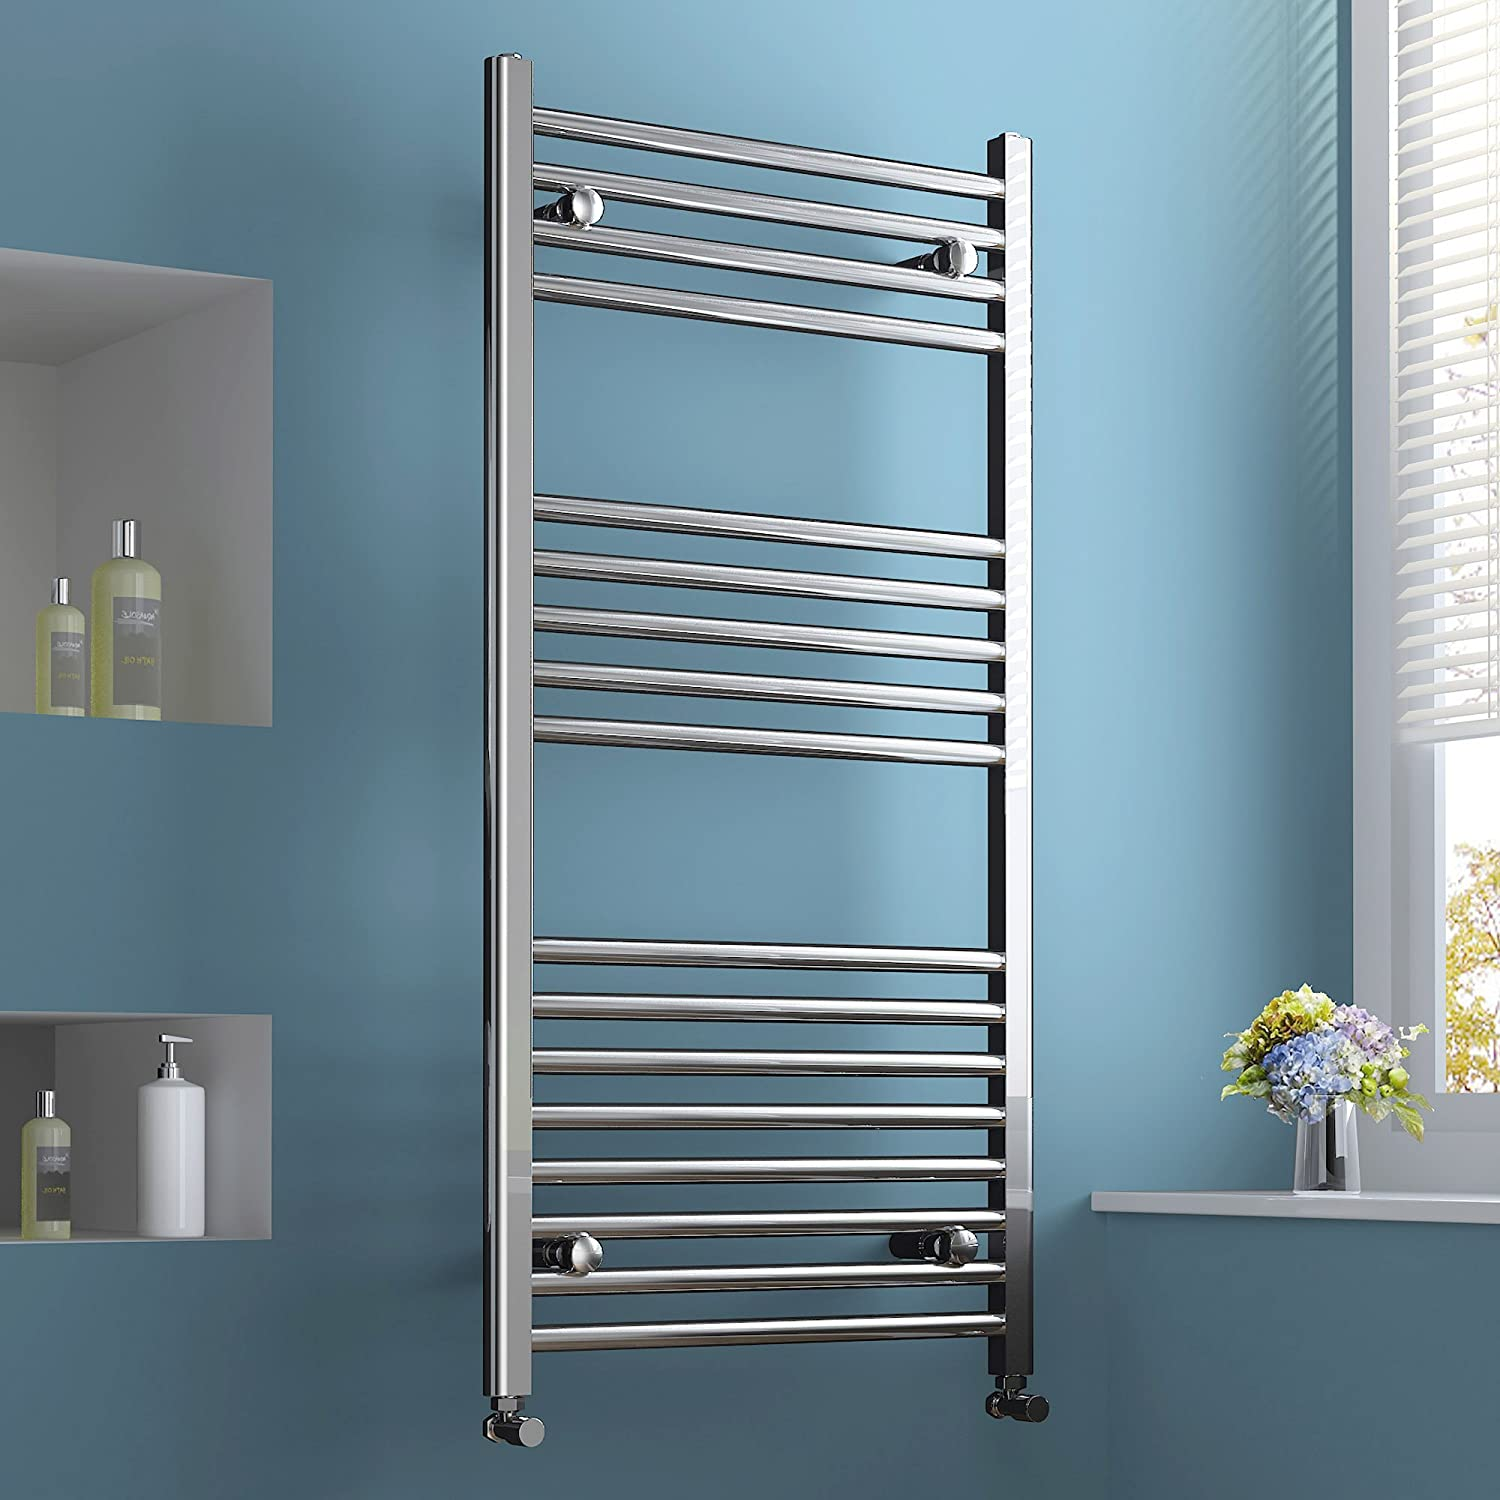 Top 10 Best Wall Mounted Towel Warmers 2019 2020 On